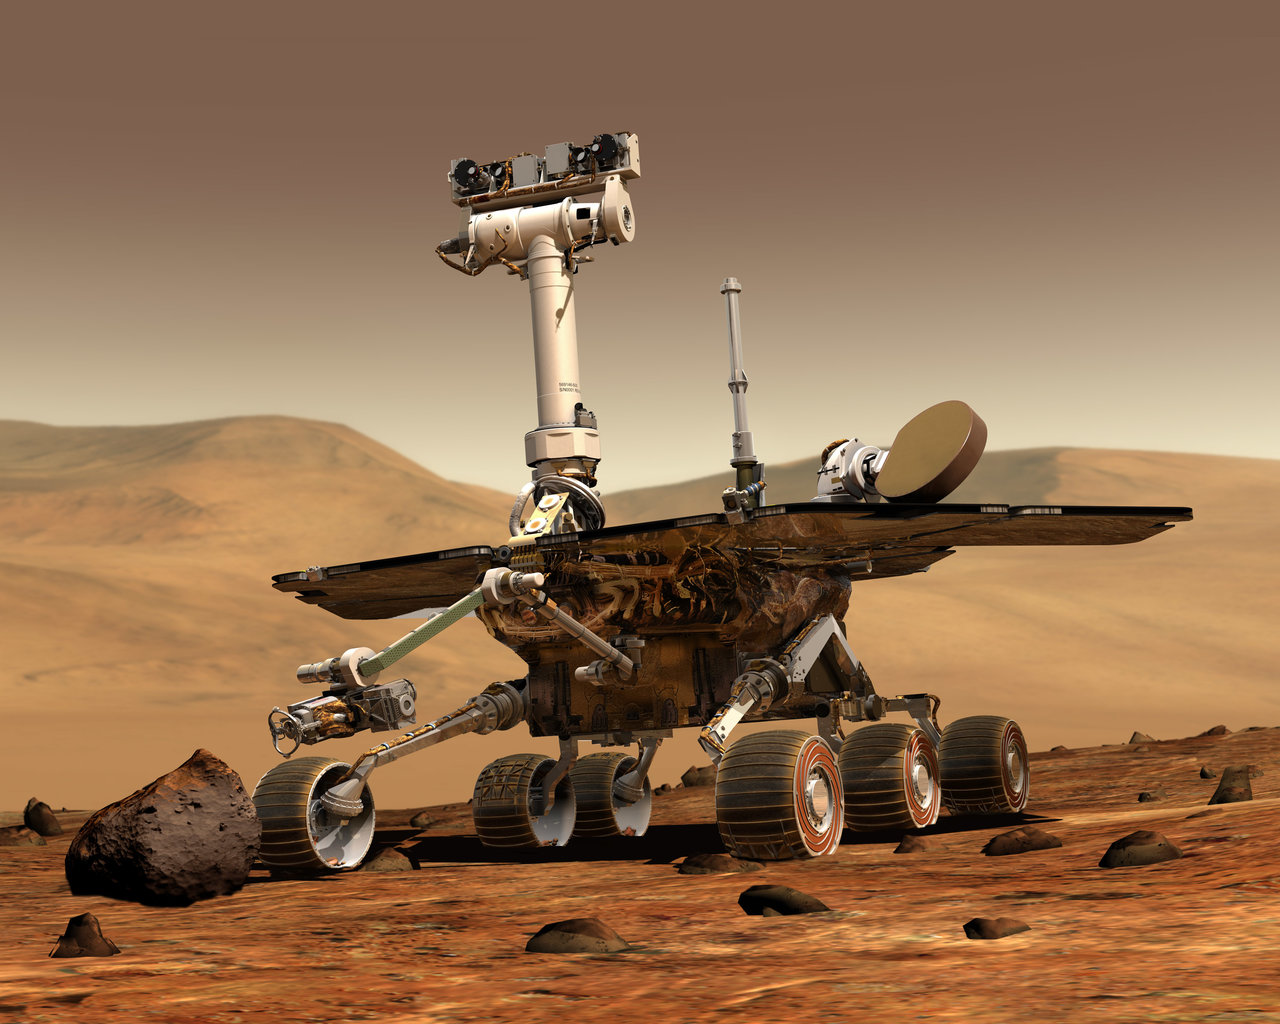 An artist's concept portrays a NASA Mars Exploration Rover on the surface of Mars. Credit: NASA/JPL/Cornell University.